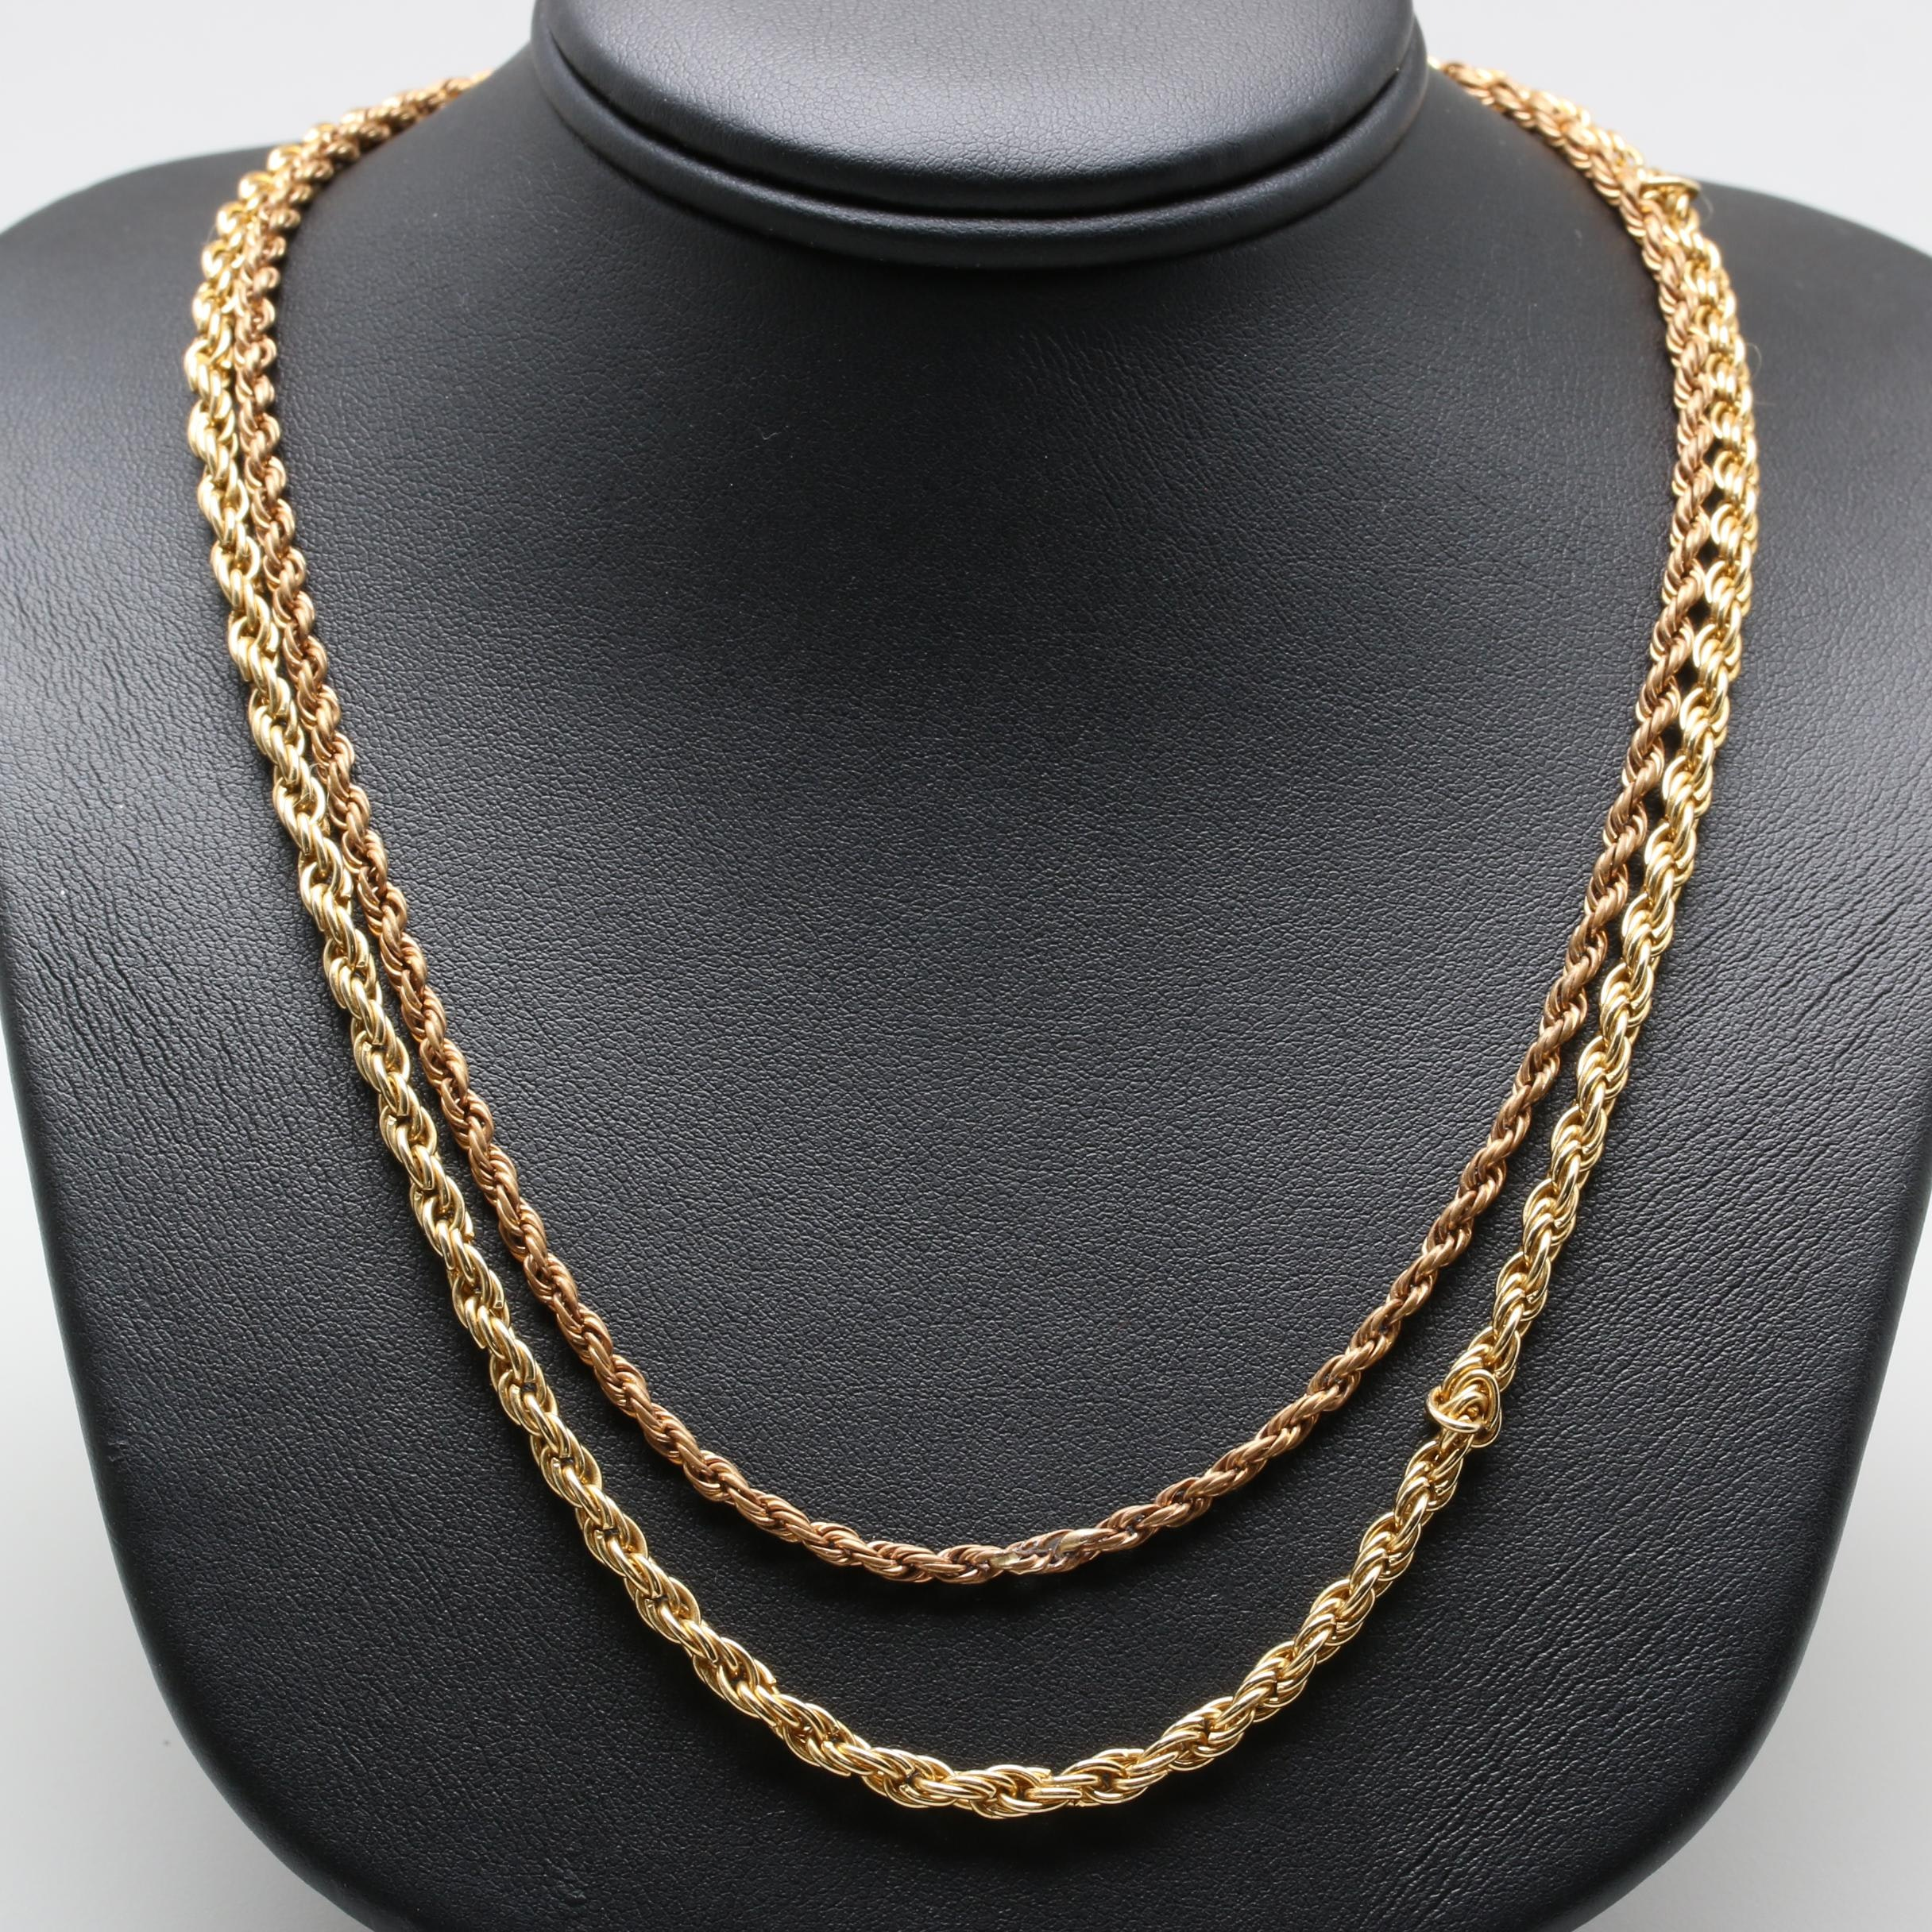 Gold Tone Chain Necklaces Including 14K Gold Findings